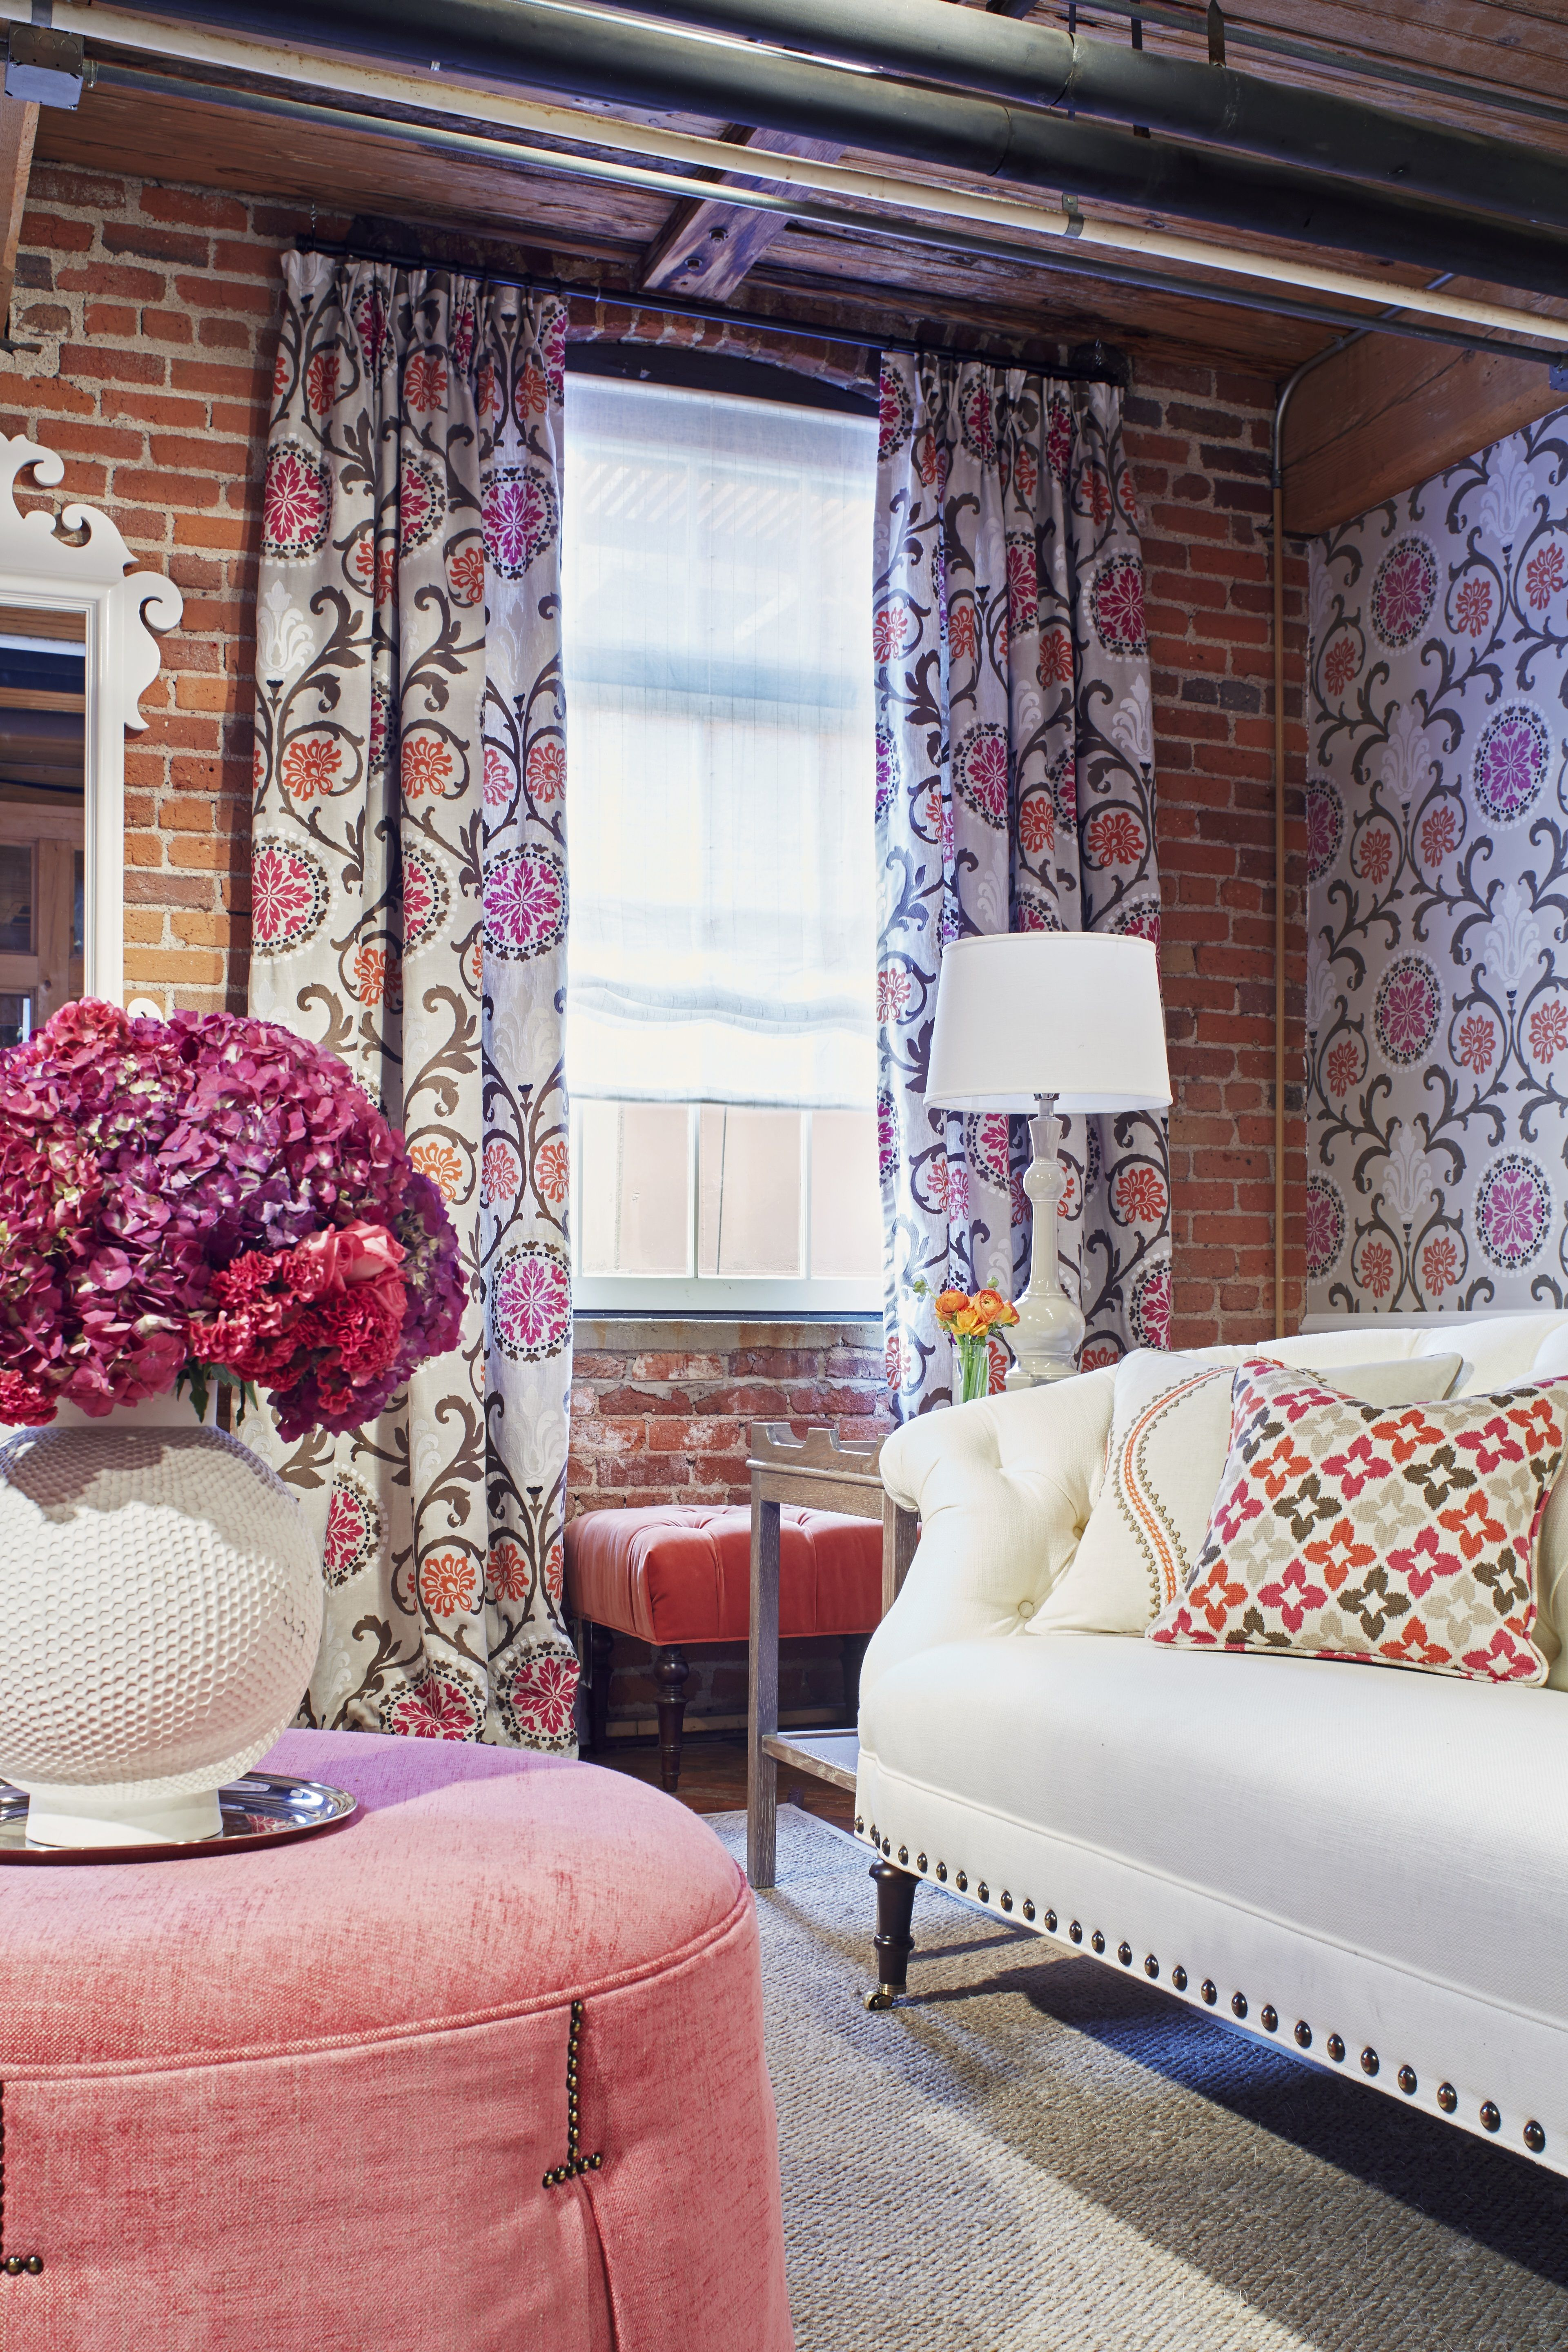 Thibaut Fine Furniture Showroom In High Point, Located At # 260 Historic  Market Square. Seen Here: Kendall Sofa In Cabo Cotton In Pearl, Wyndham  Ottoman In ...